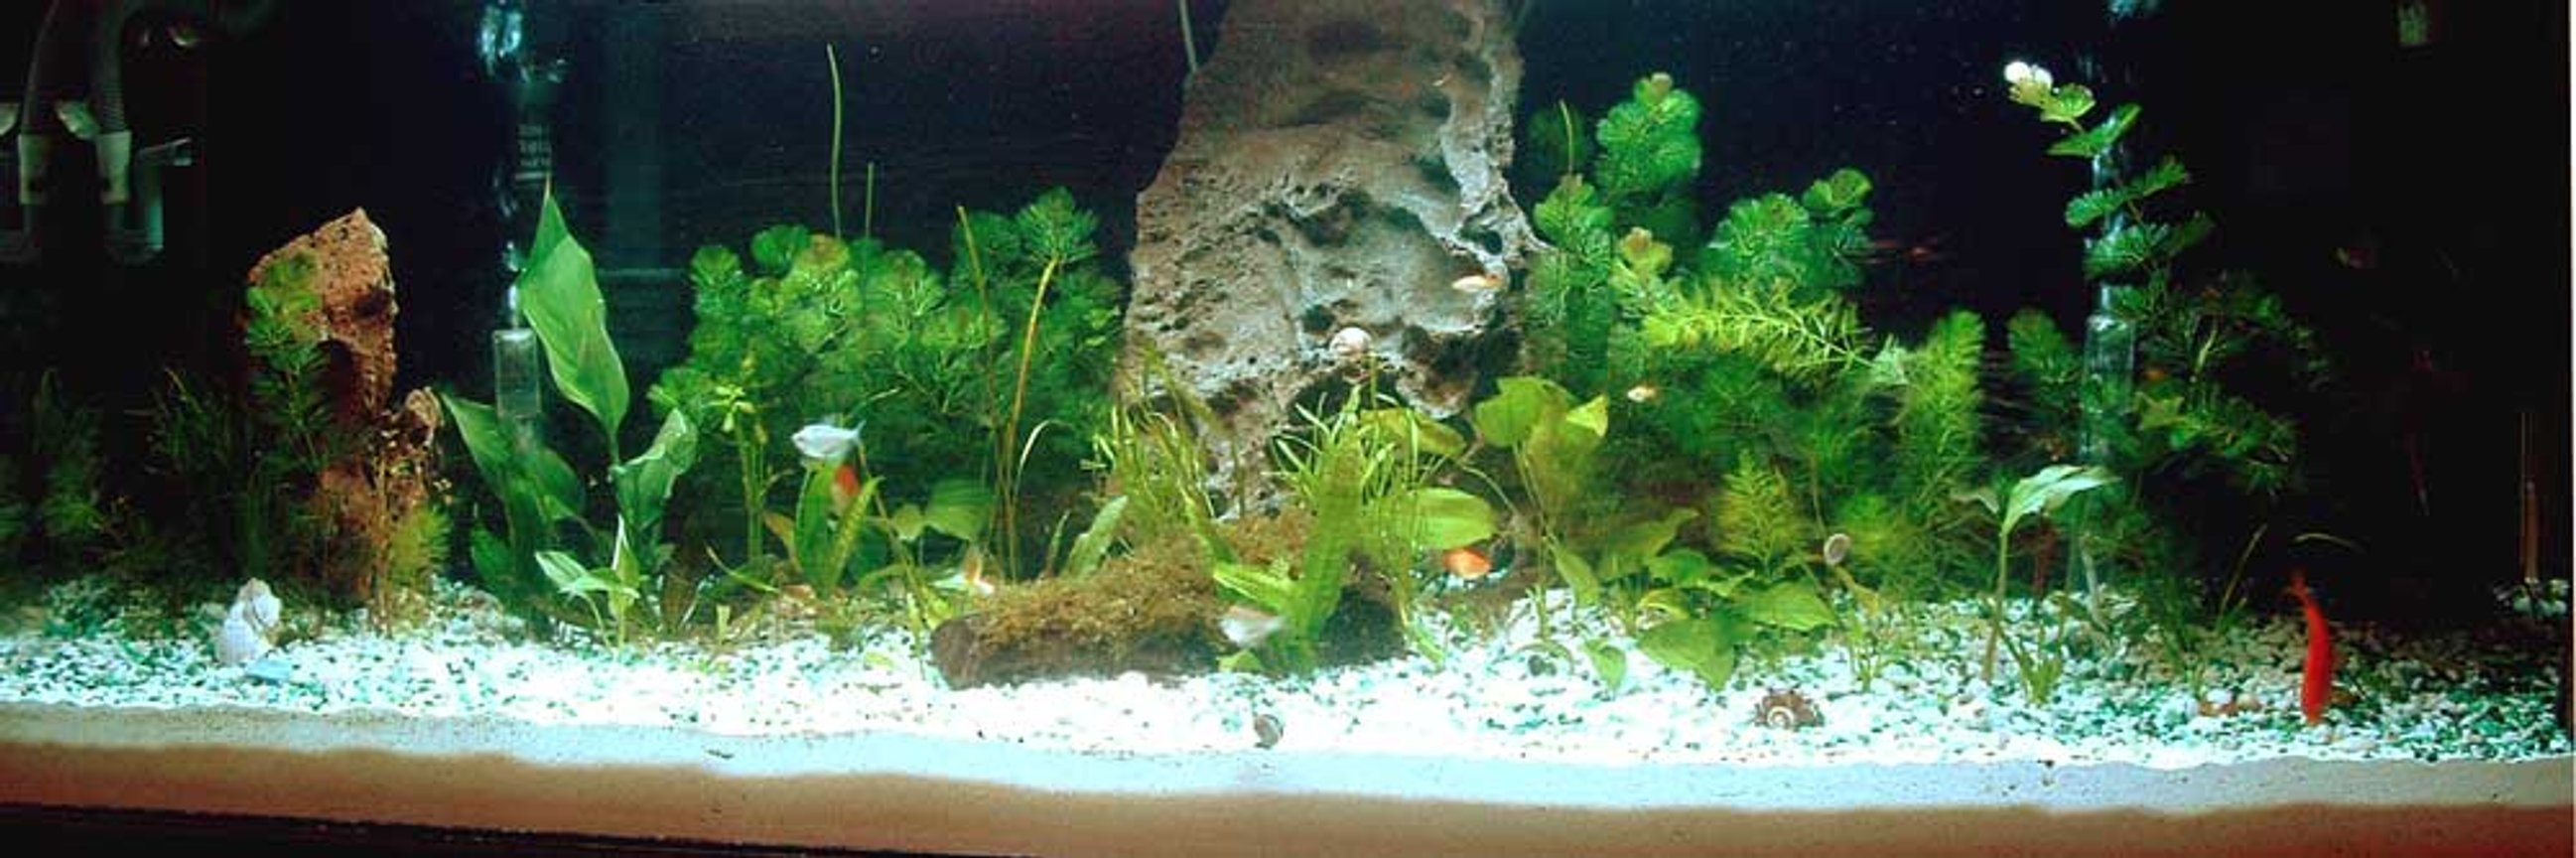 100 gallons freshwater fish tank (mostly fish and non-living decorations) - 2-week old 100 Gallon Community Fish Tank - Jan 26, 06.